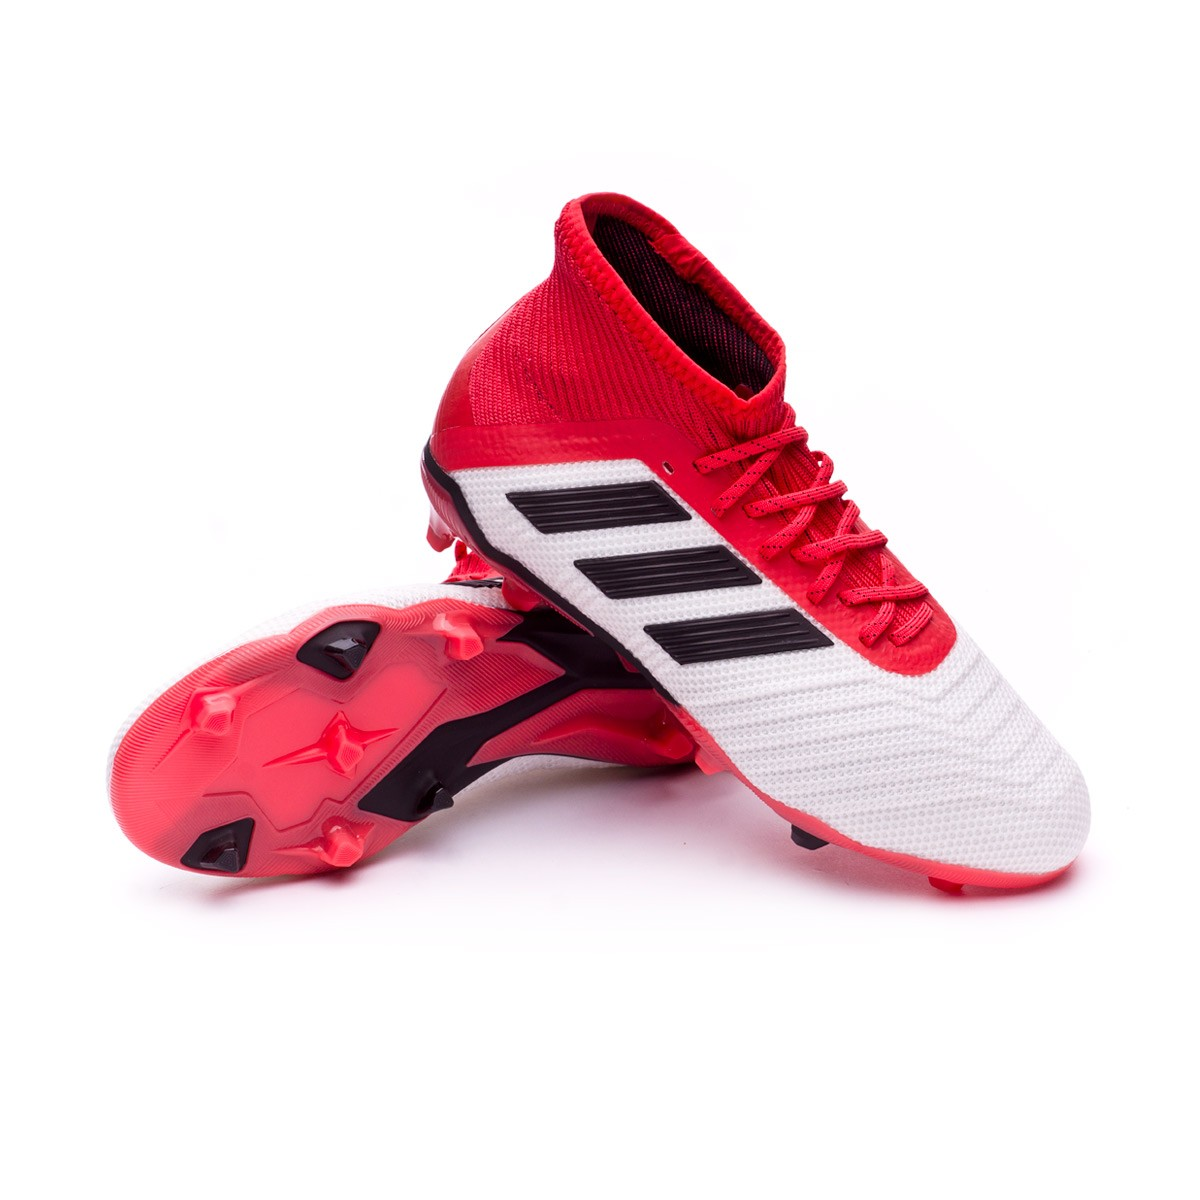 Zapatos de fútbol adidas Predator 18.1 FG Niño White-Core black-Real ... d2a2c71163be7